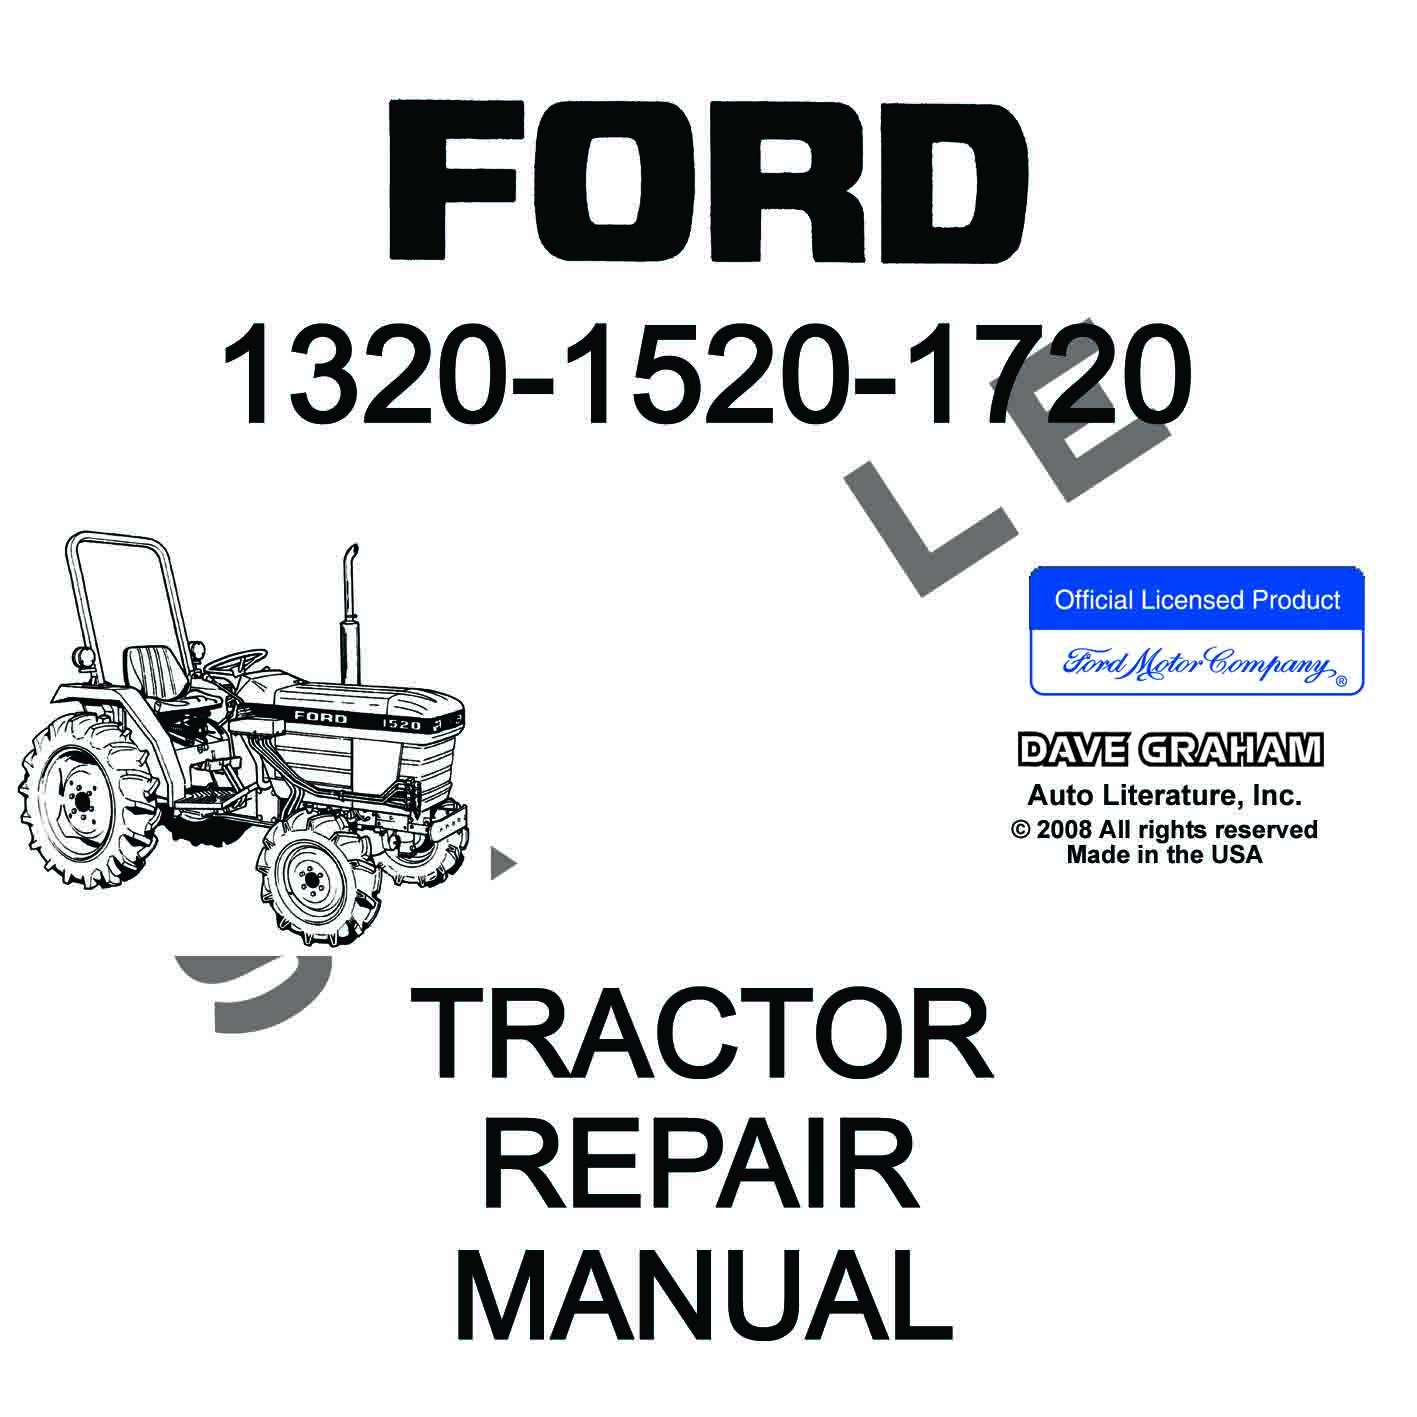 1320  1520  1720 Ford Tractor Shop Manual